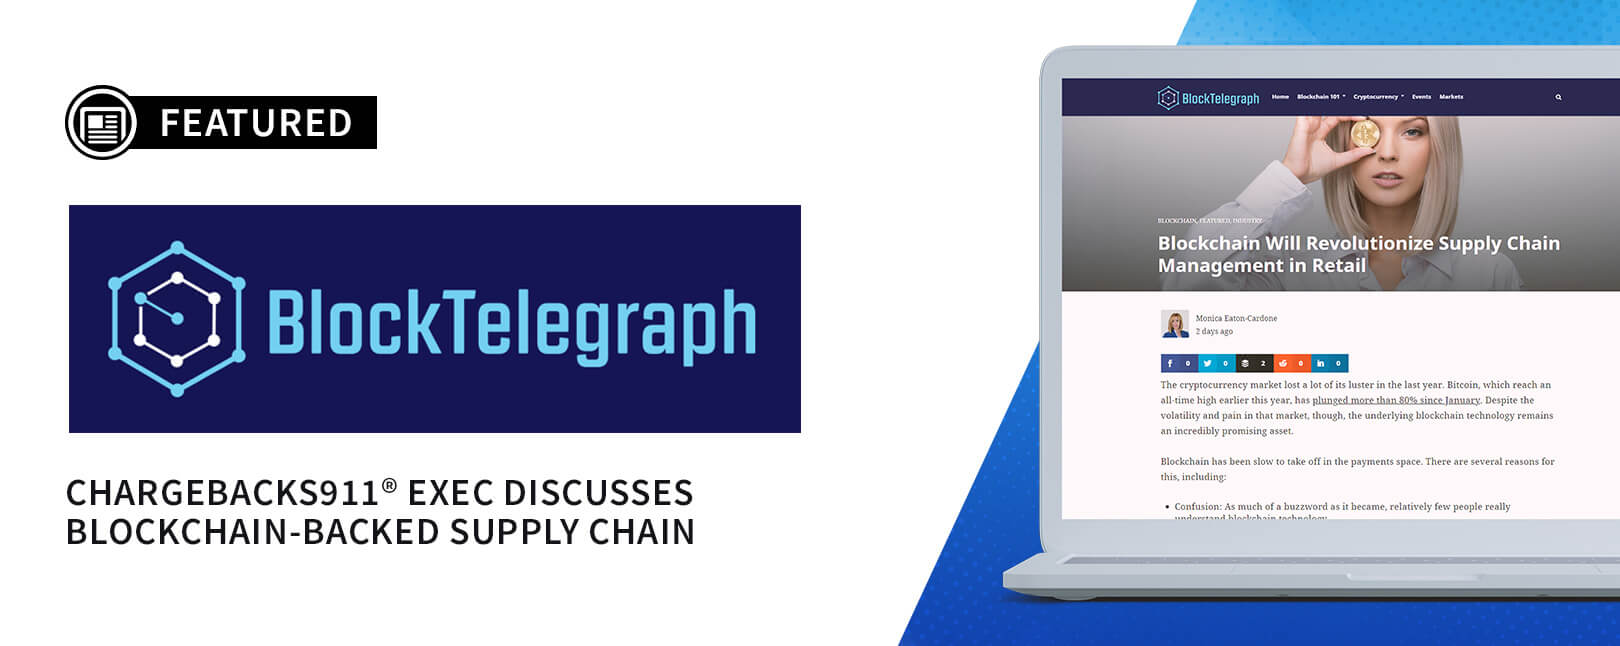 Chargebacks911® Exec Discusses Blockchain-Backed Supply Chain for BlockTelegraph